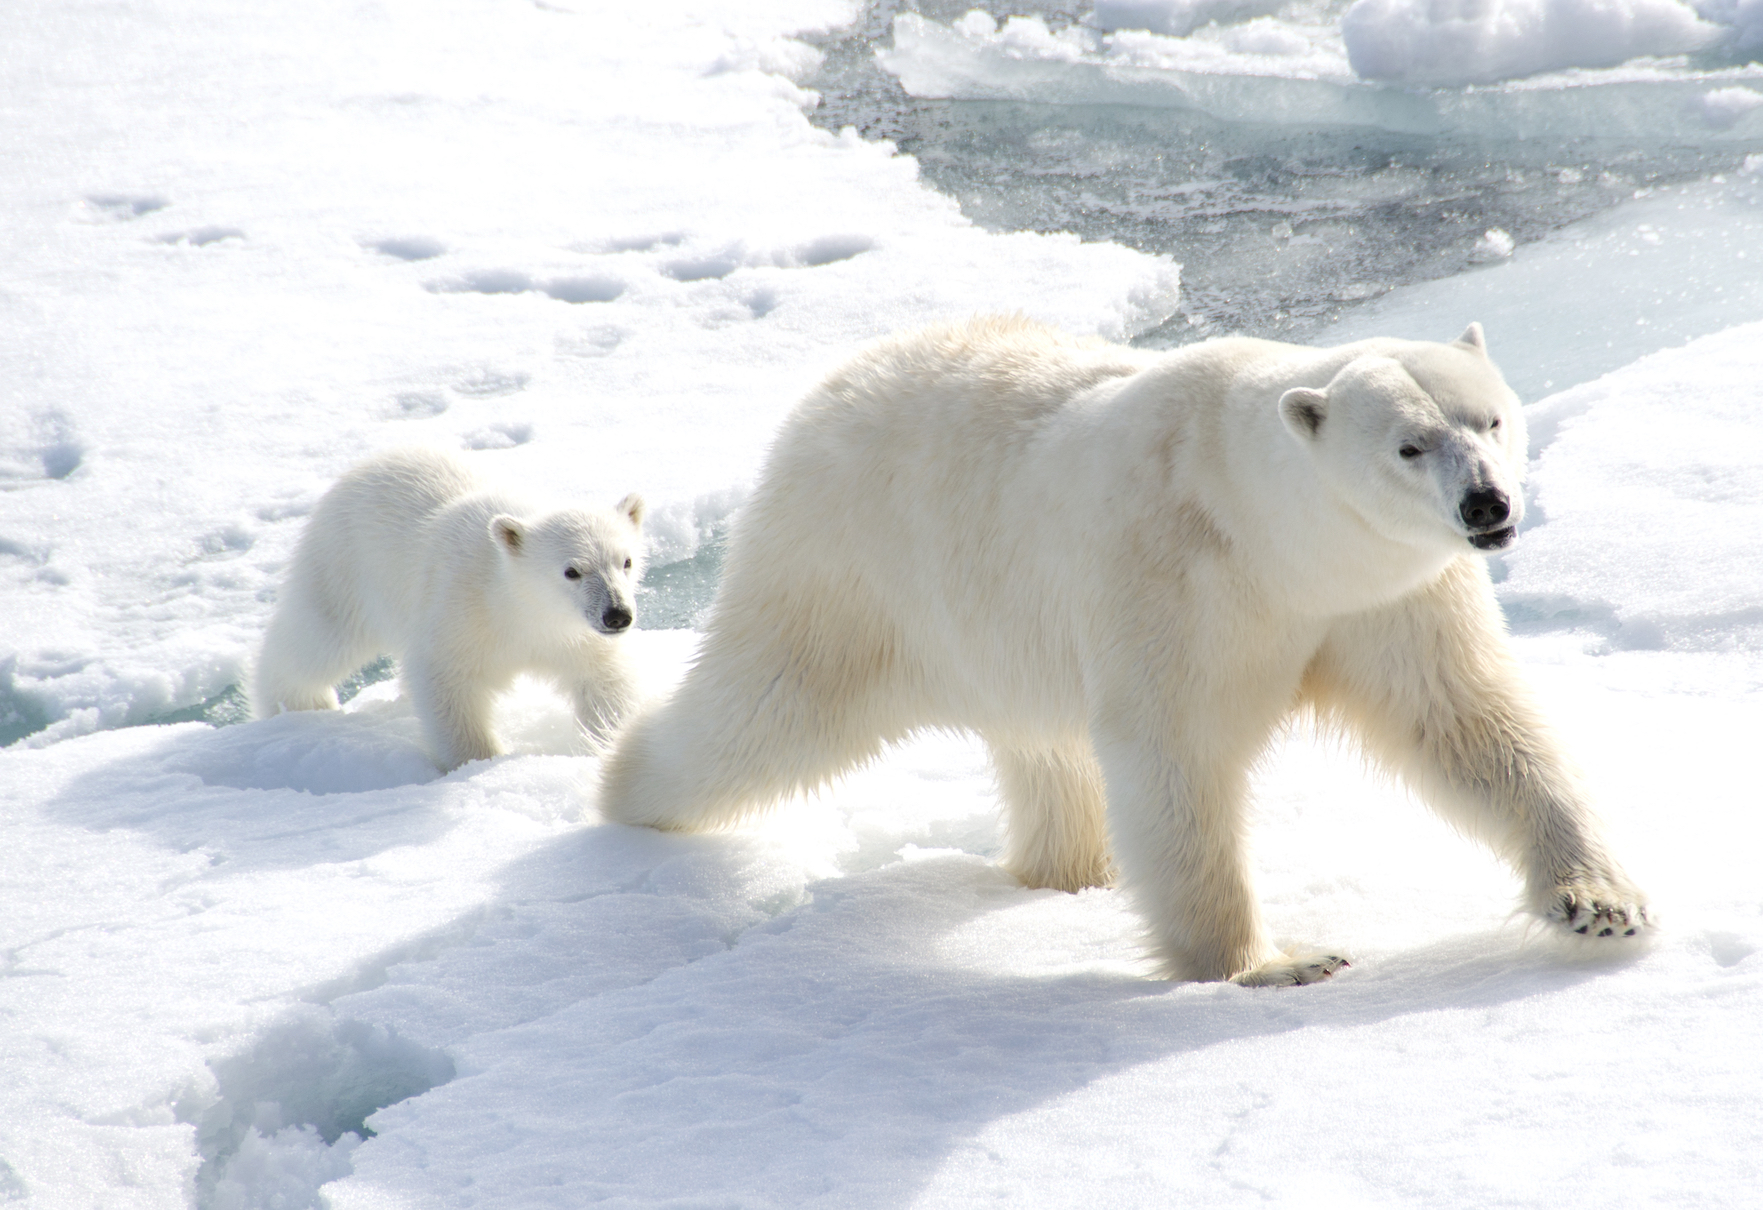 Polar bears are efficient travelers and consume the same amount of energy as grizzly bears and other large animals when they walk.